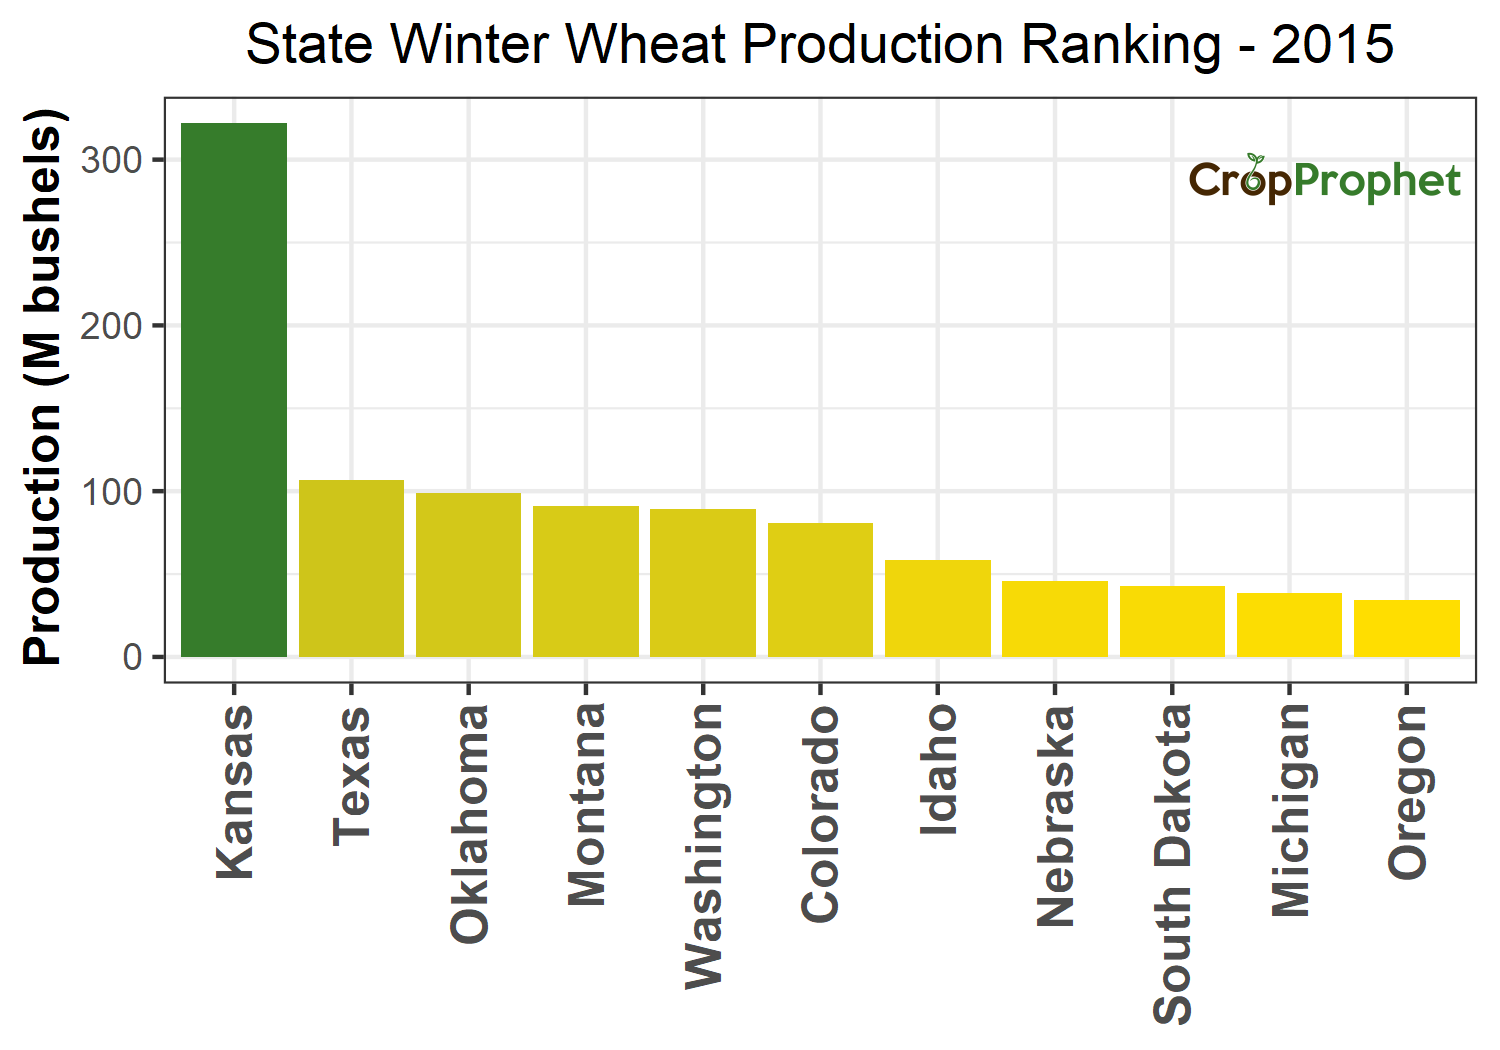 Winter wheat Production by State - 2015 Rankings